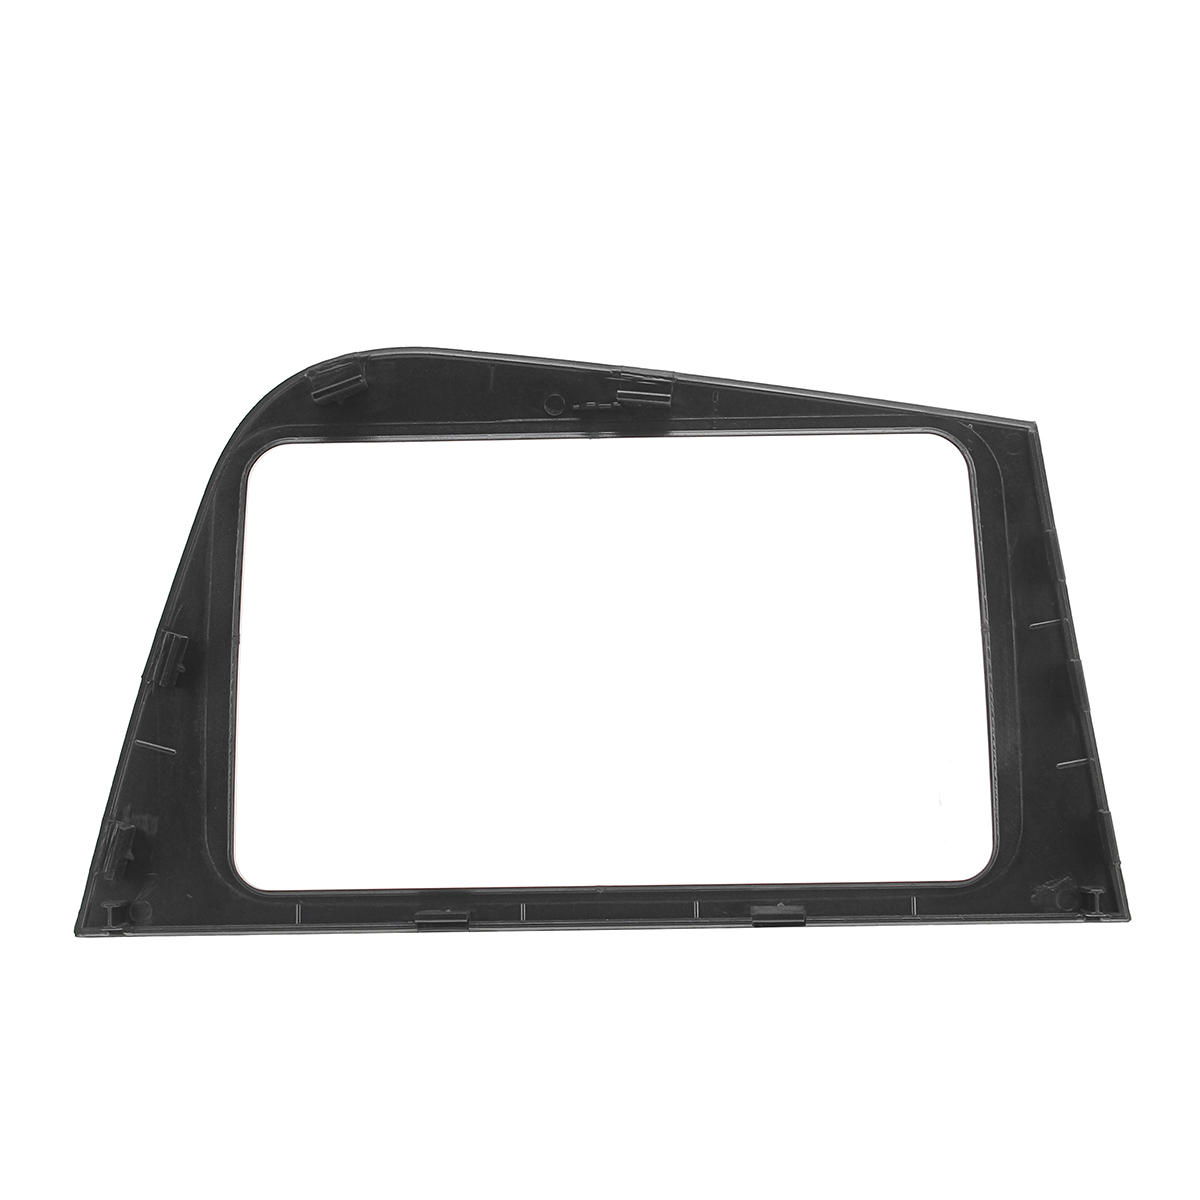 Seat Leon 2 Din Adapter 2din Radio Fascia Car Stereo Panel Plate Adapter Trim For Seat Leon Right Hand Drive